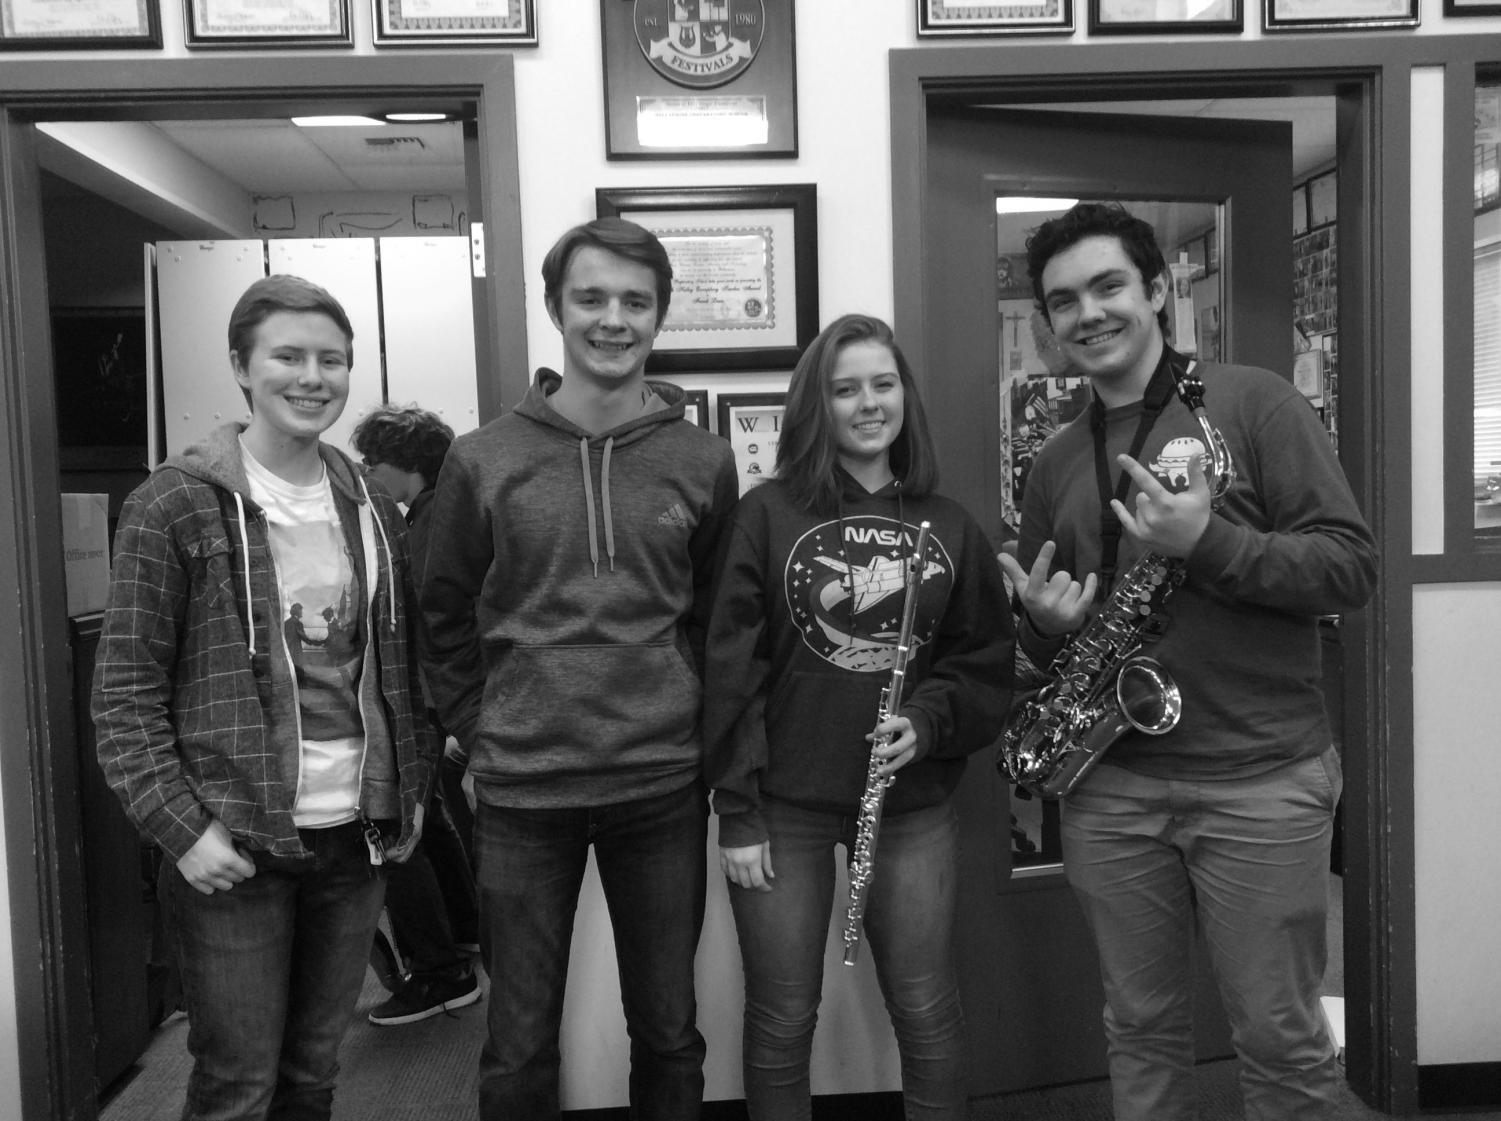 (Left to right) Claudia Modarelli, Max Gross-Shader, Lauren Fessenden and Mack Gibbens, four of the six AP music theory students. Photo by Adrienne Pascual